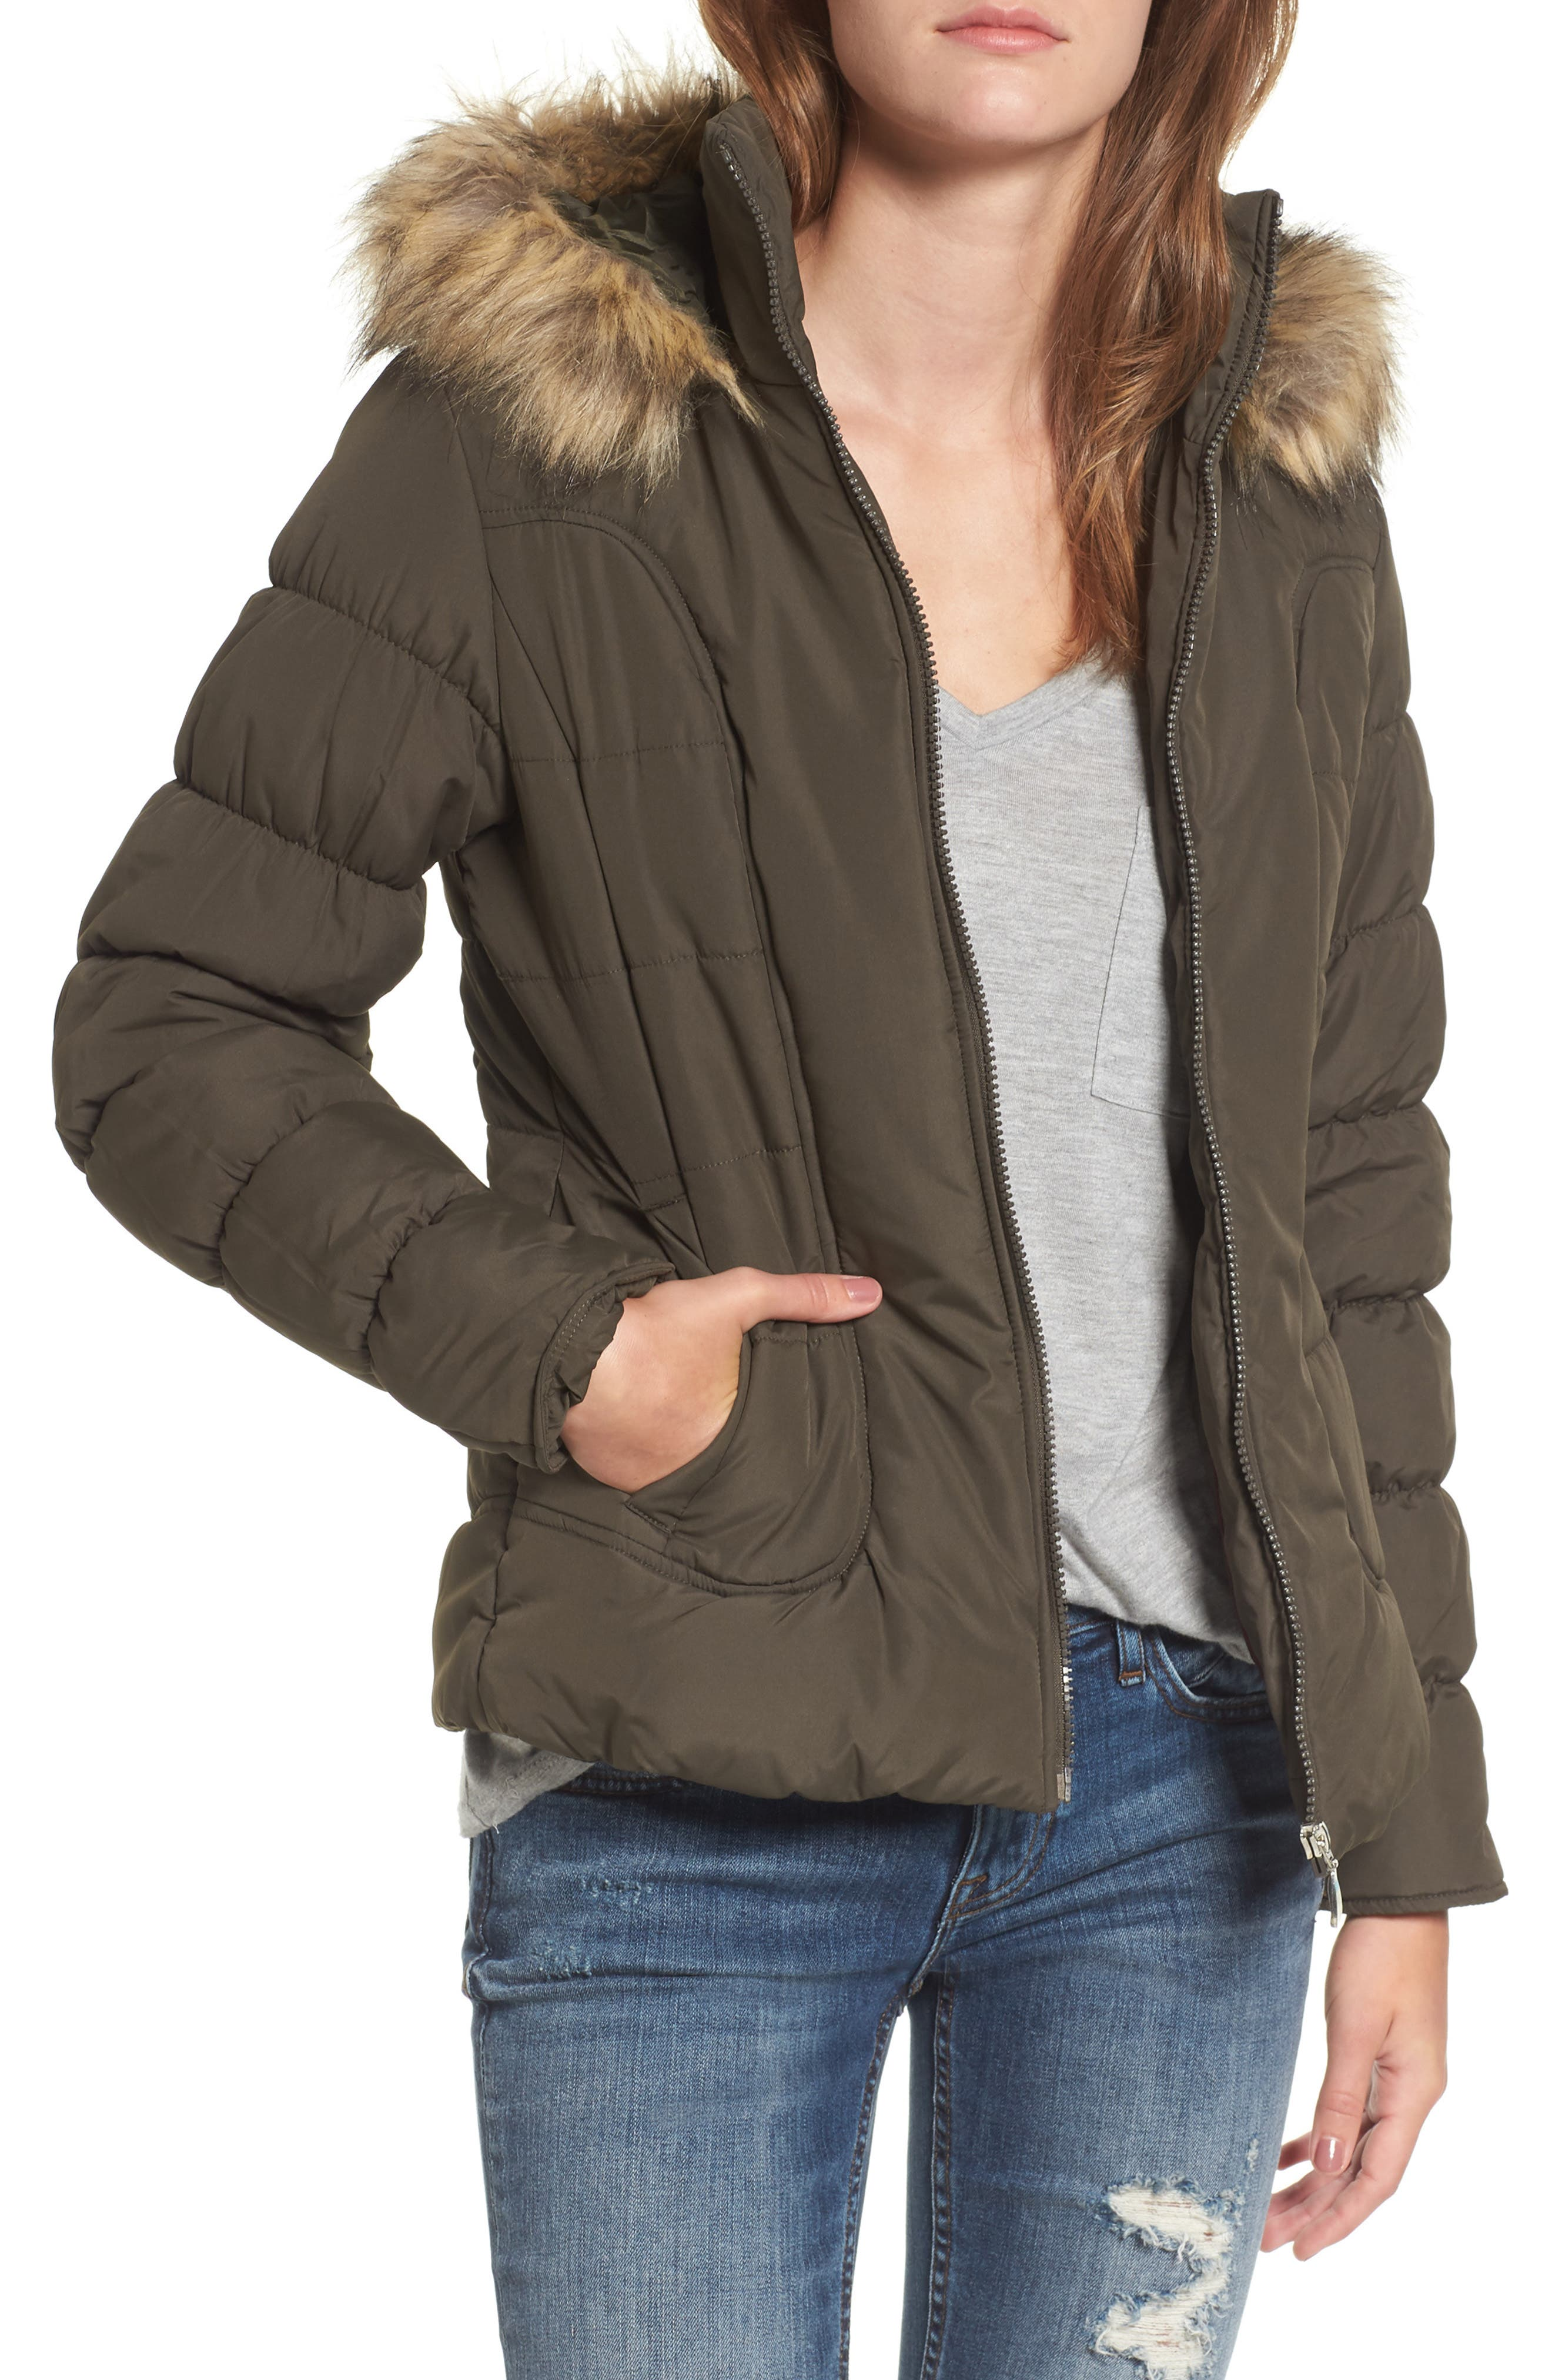 Maralyn & Me Quilted Jacket with Faux Fur Collar